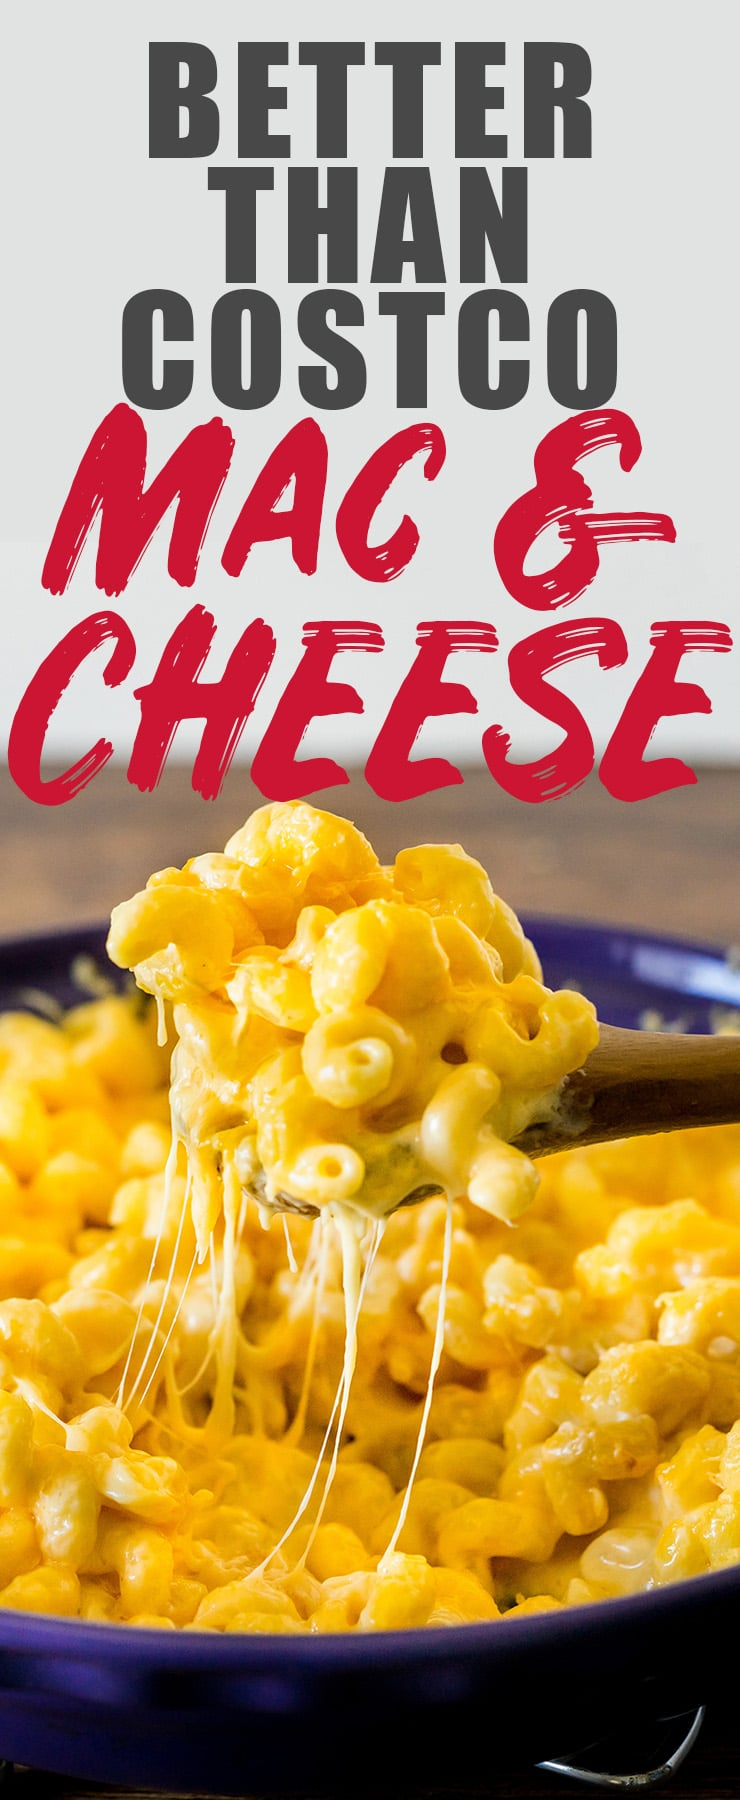 Creamy, cheesy, and super easy, this mac and cheese recipe will make your Costco Mac and Cheese loving heart happy. I have a feeling you won't need your Costco card after trying this. #macandcheese #costco #cheesy #copycat #macaroni